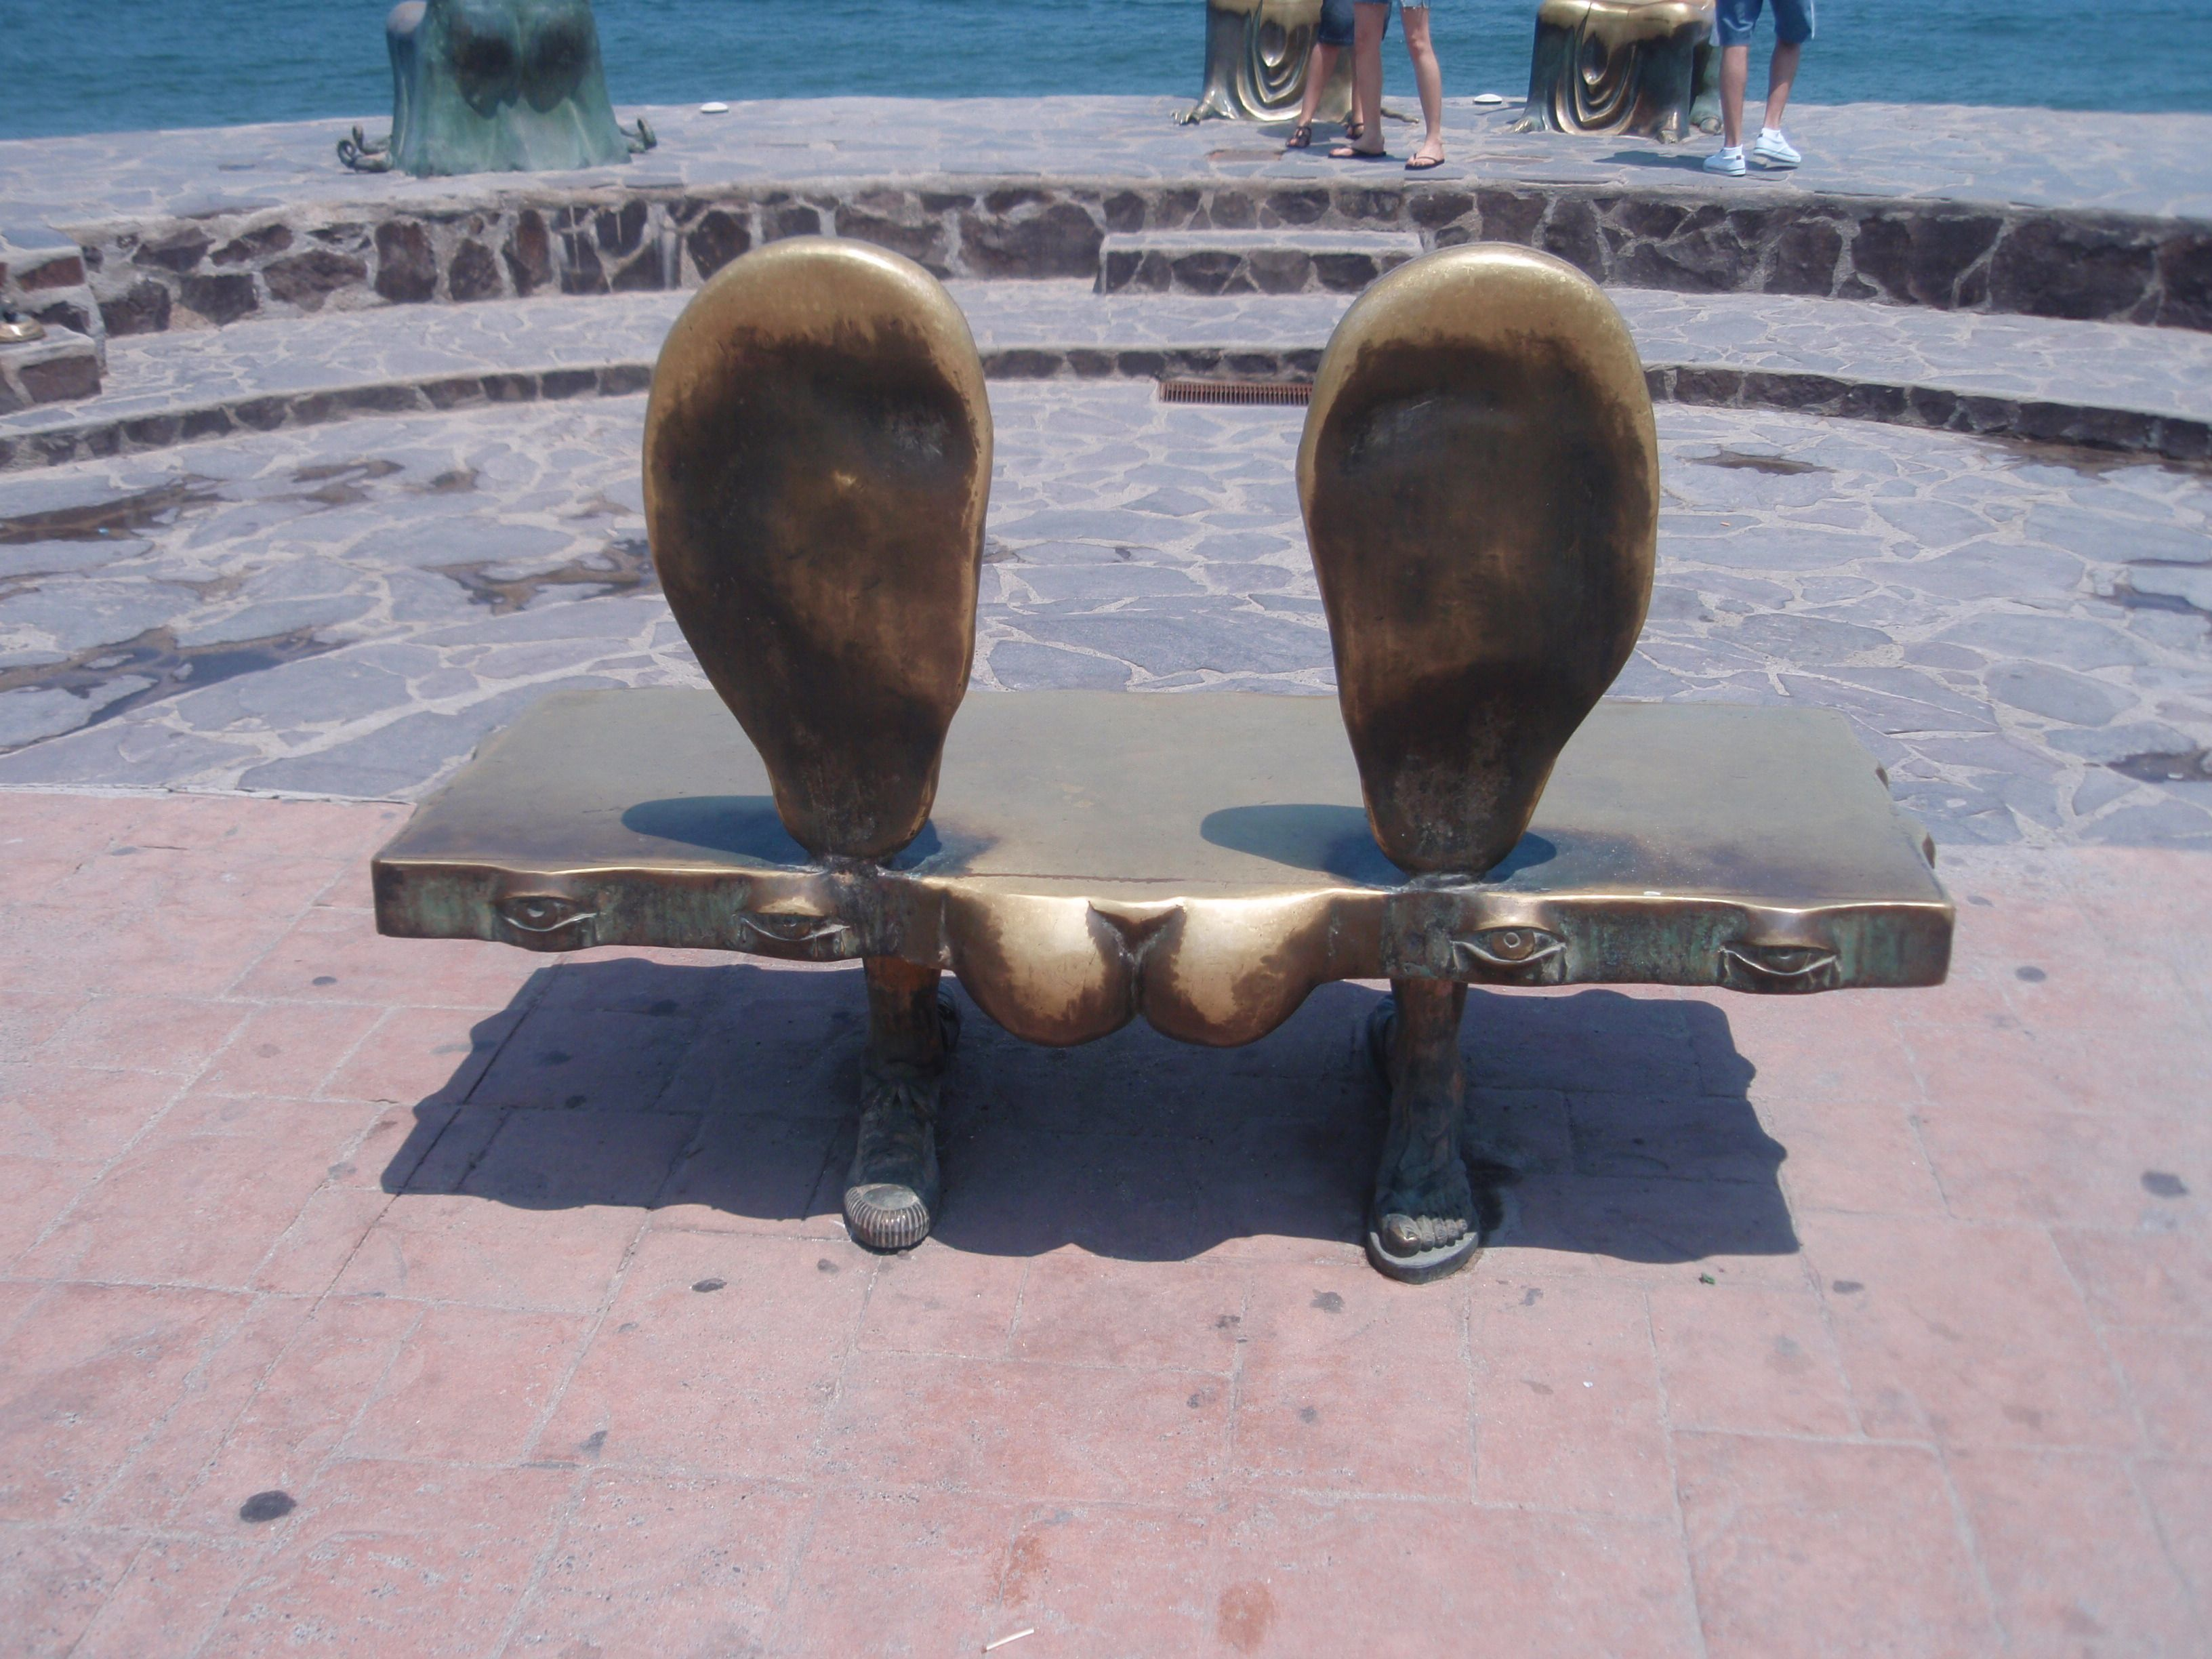 Have a seat...I'll lend you my ear! (PV, Mex)---photo by amb